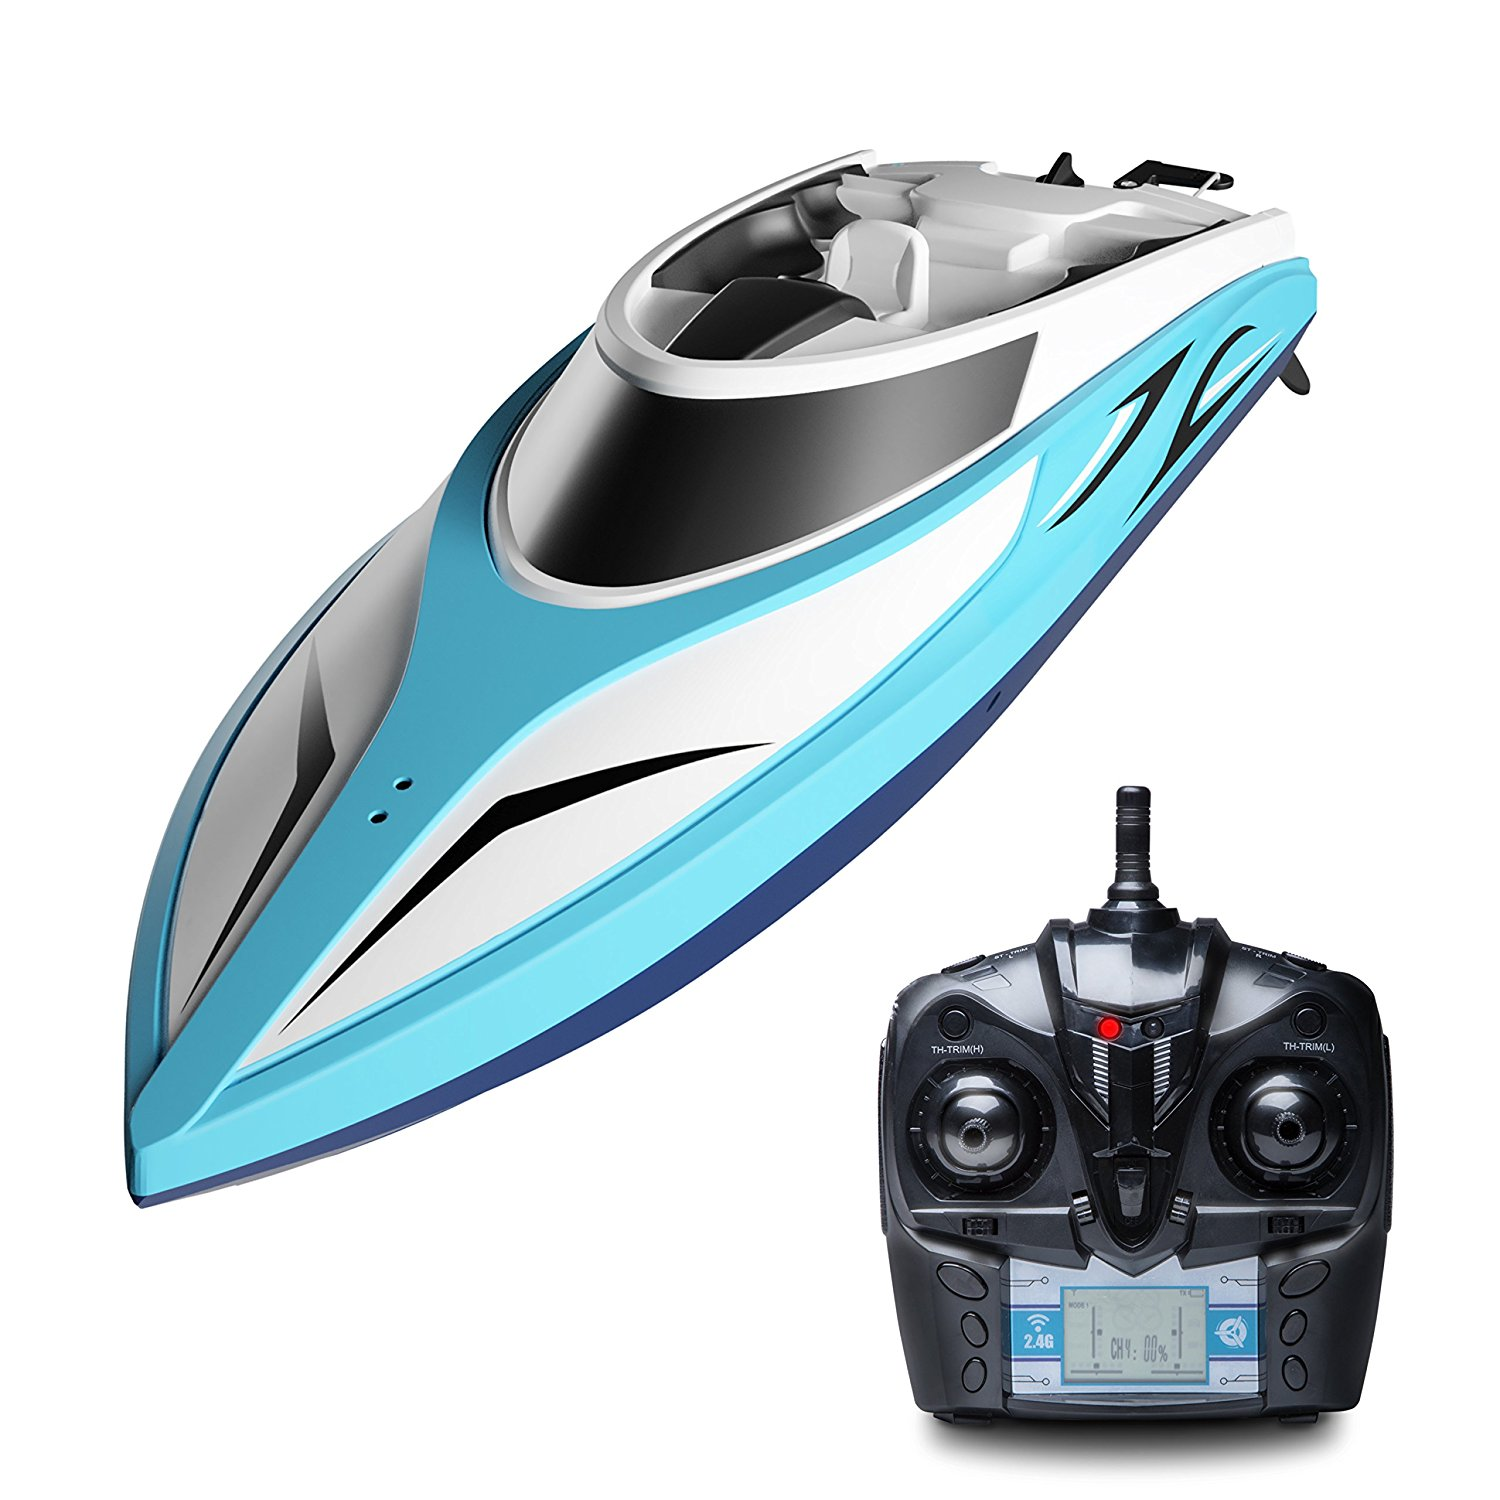 H102 Velocity Remote Control Boat for Pool & Outdoor Use ...